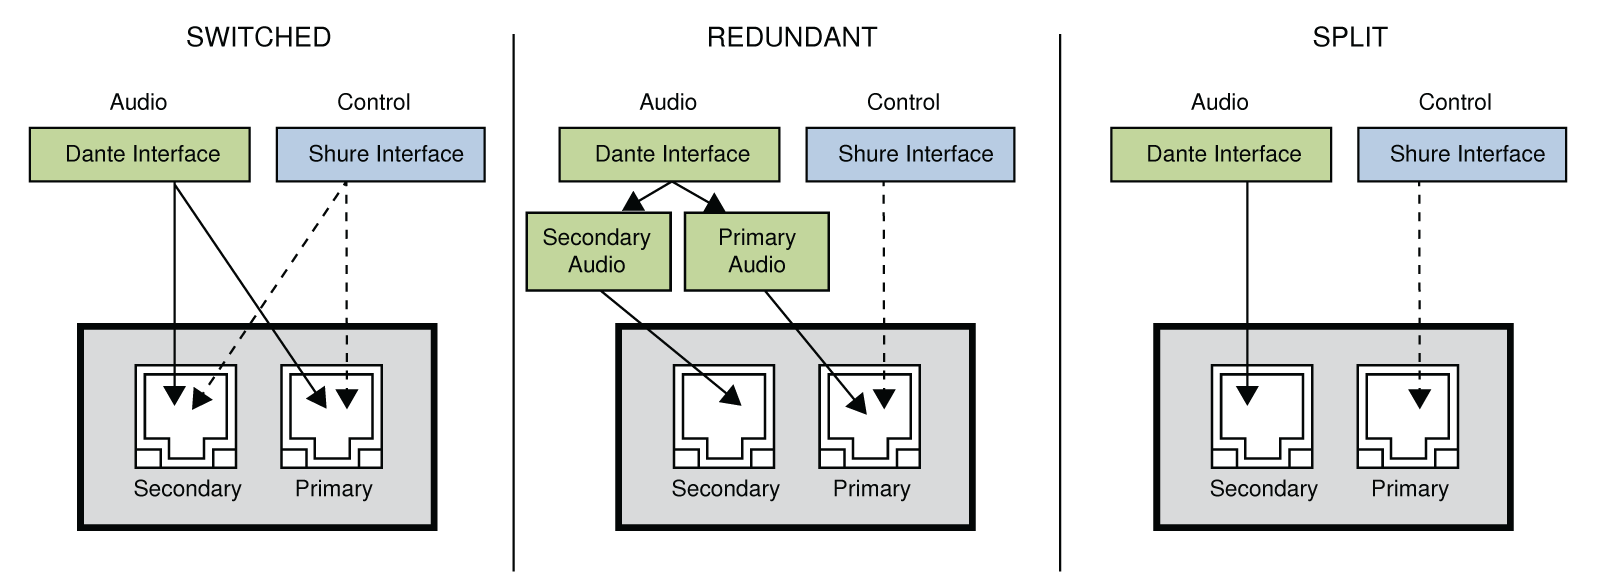 Each of the three Dante network modes diagrammed